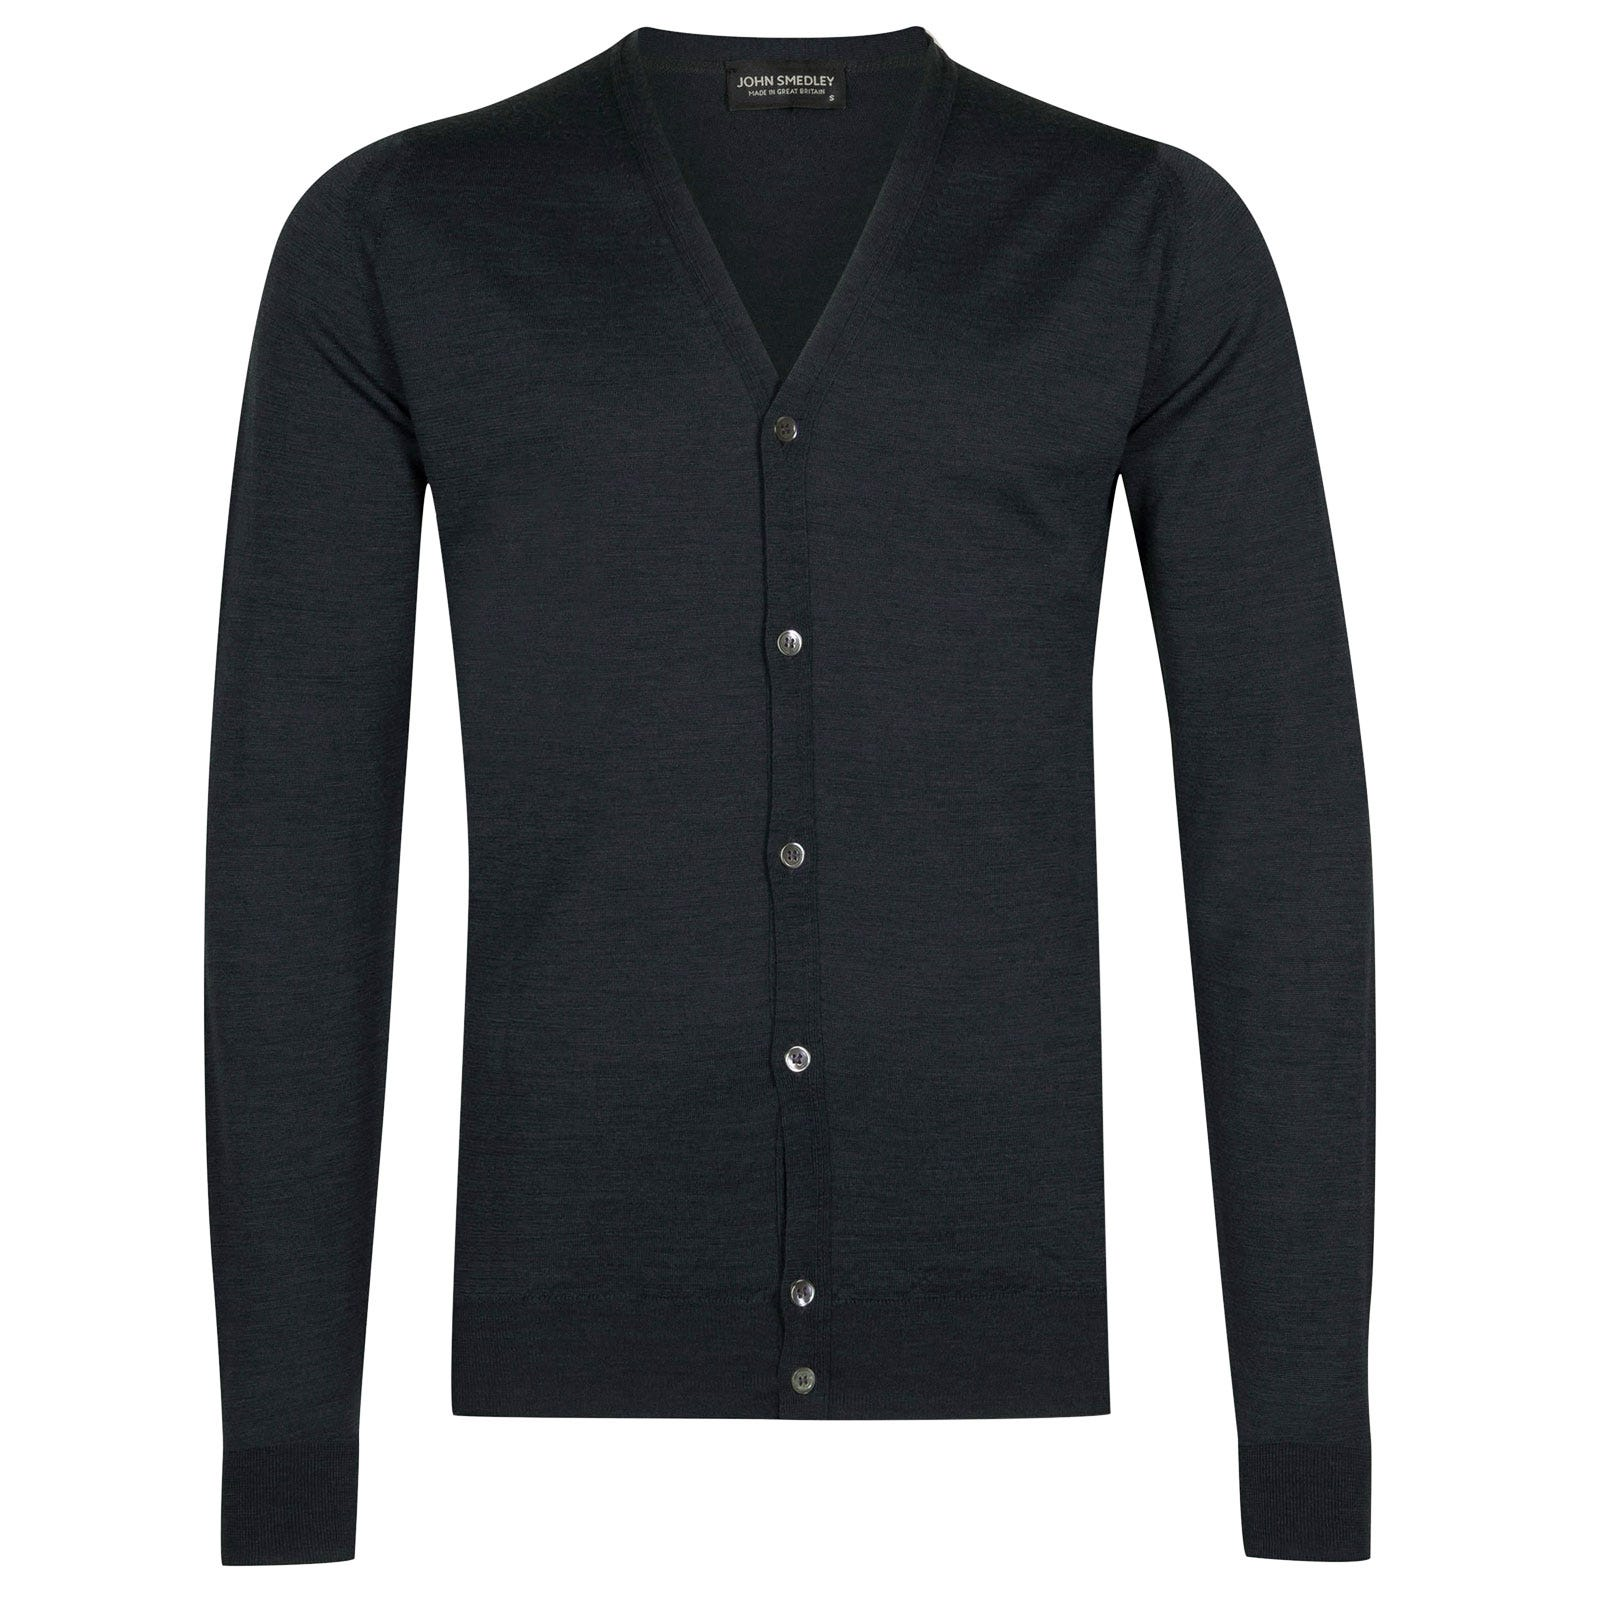 John Smedley petworth Merino Wool Cardigan in Charcoal-S